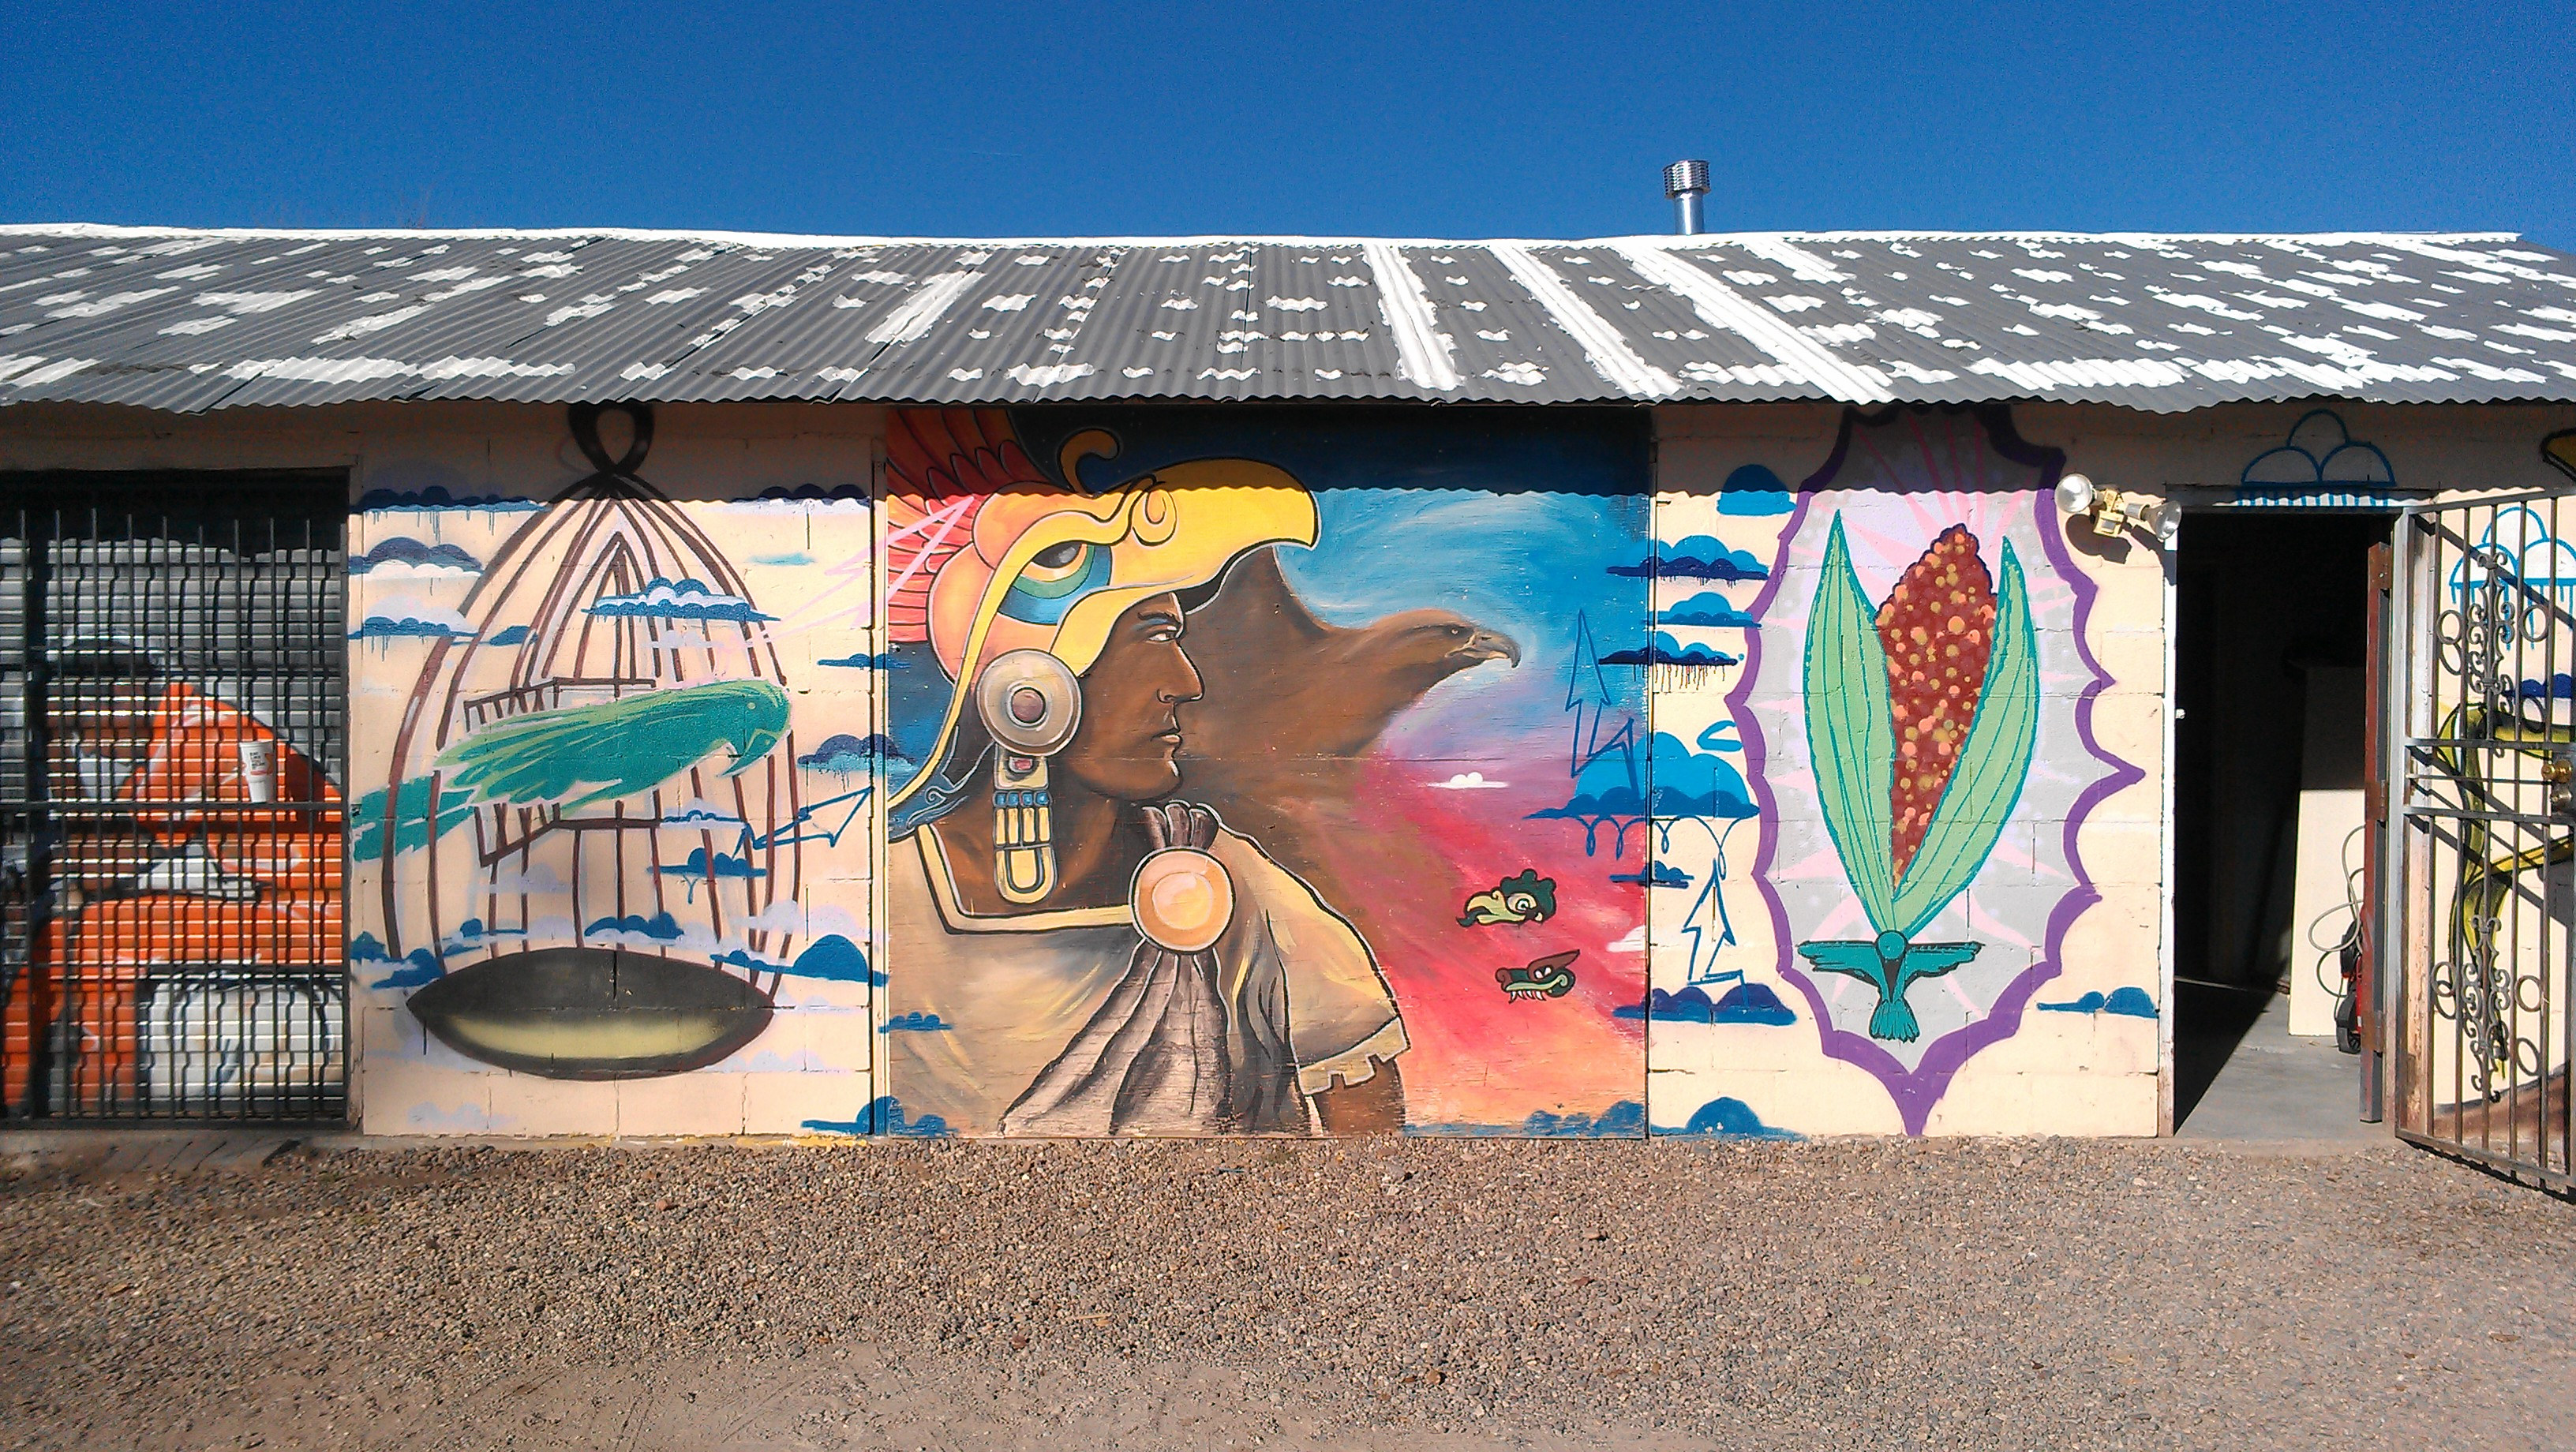 ADDICTION IN NEW MEXICO: LA CULTURA CURA